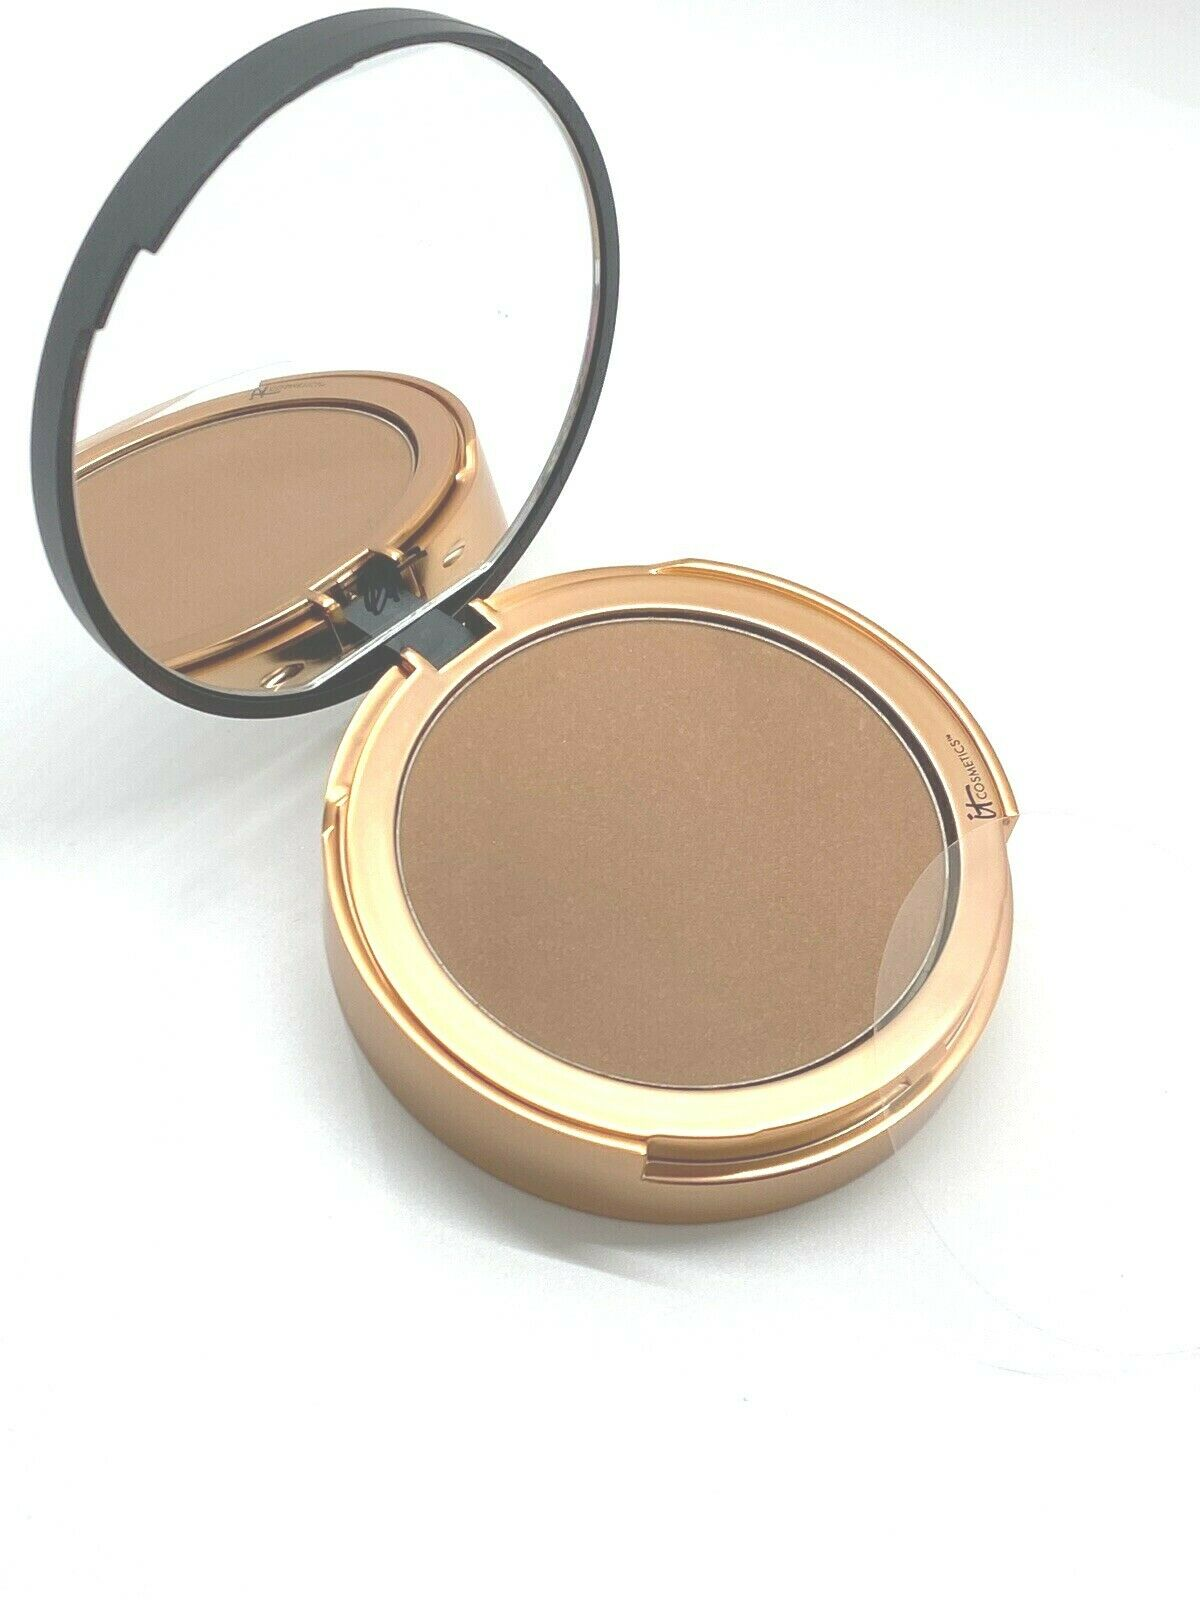 IT Cosmetics Bye Bye Pores Poreless Finish Airbrush Bronzer